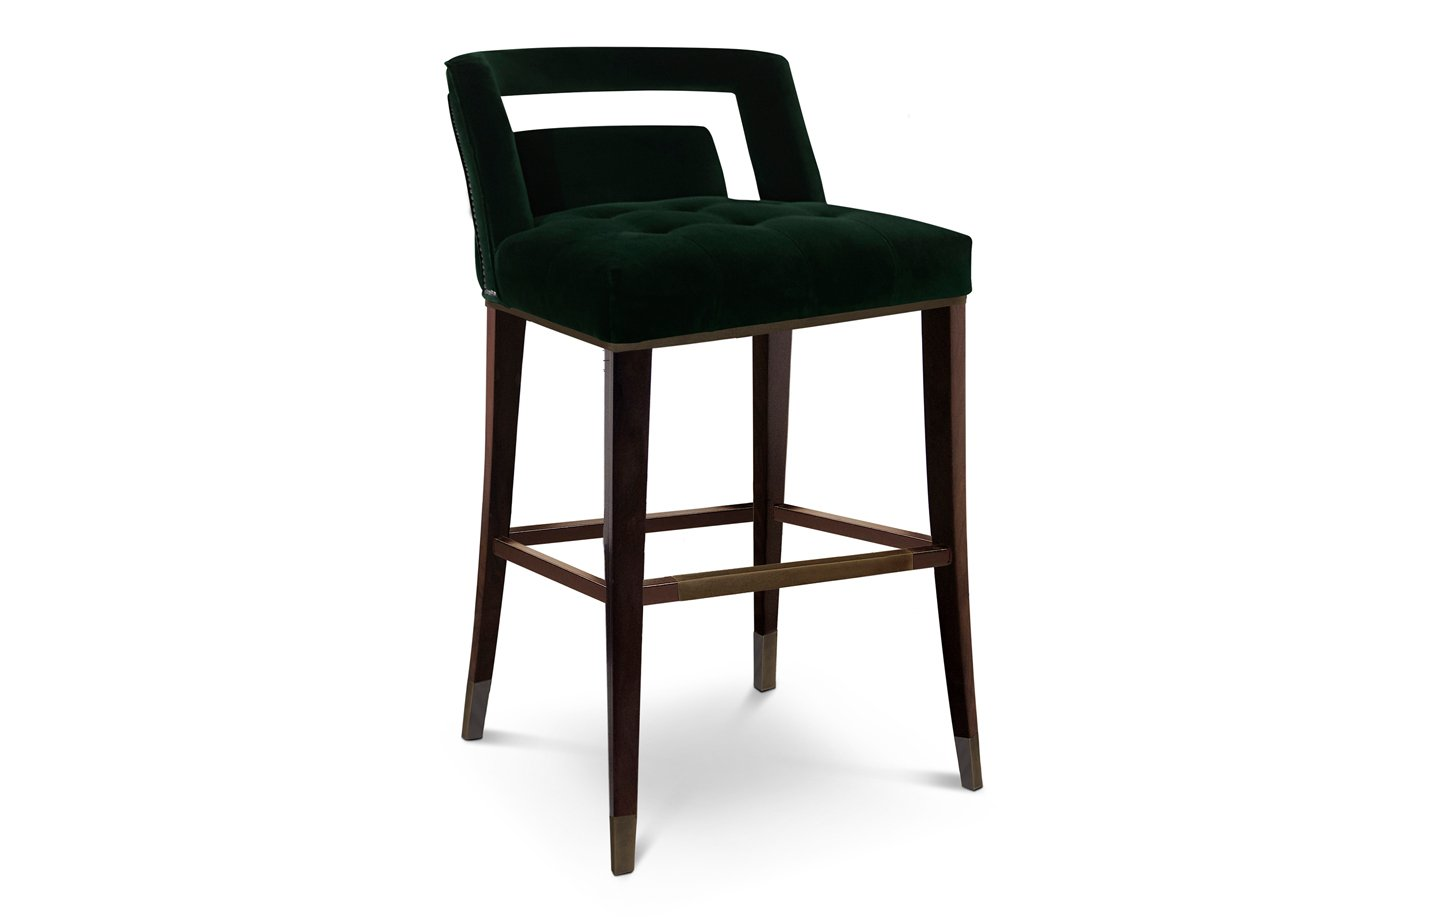 Naj bar chair – Green